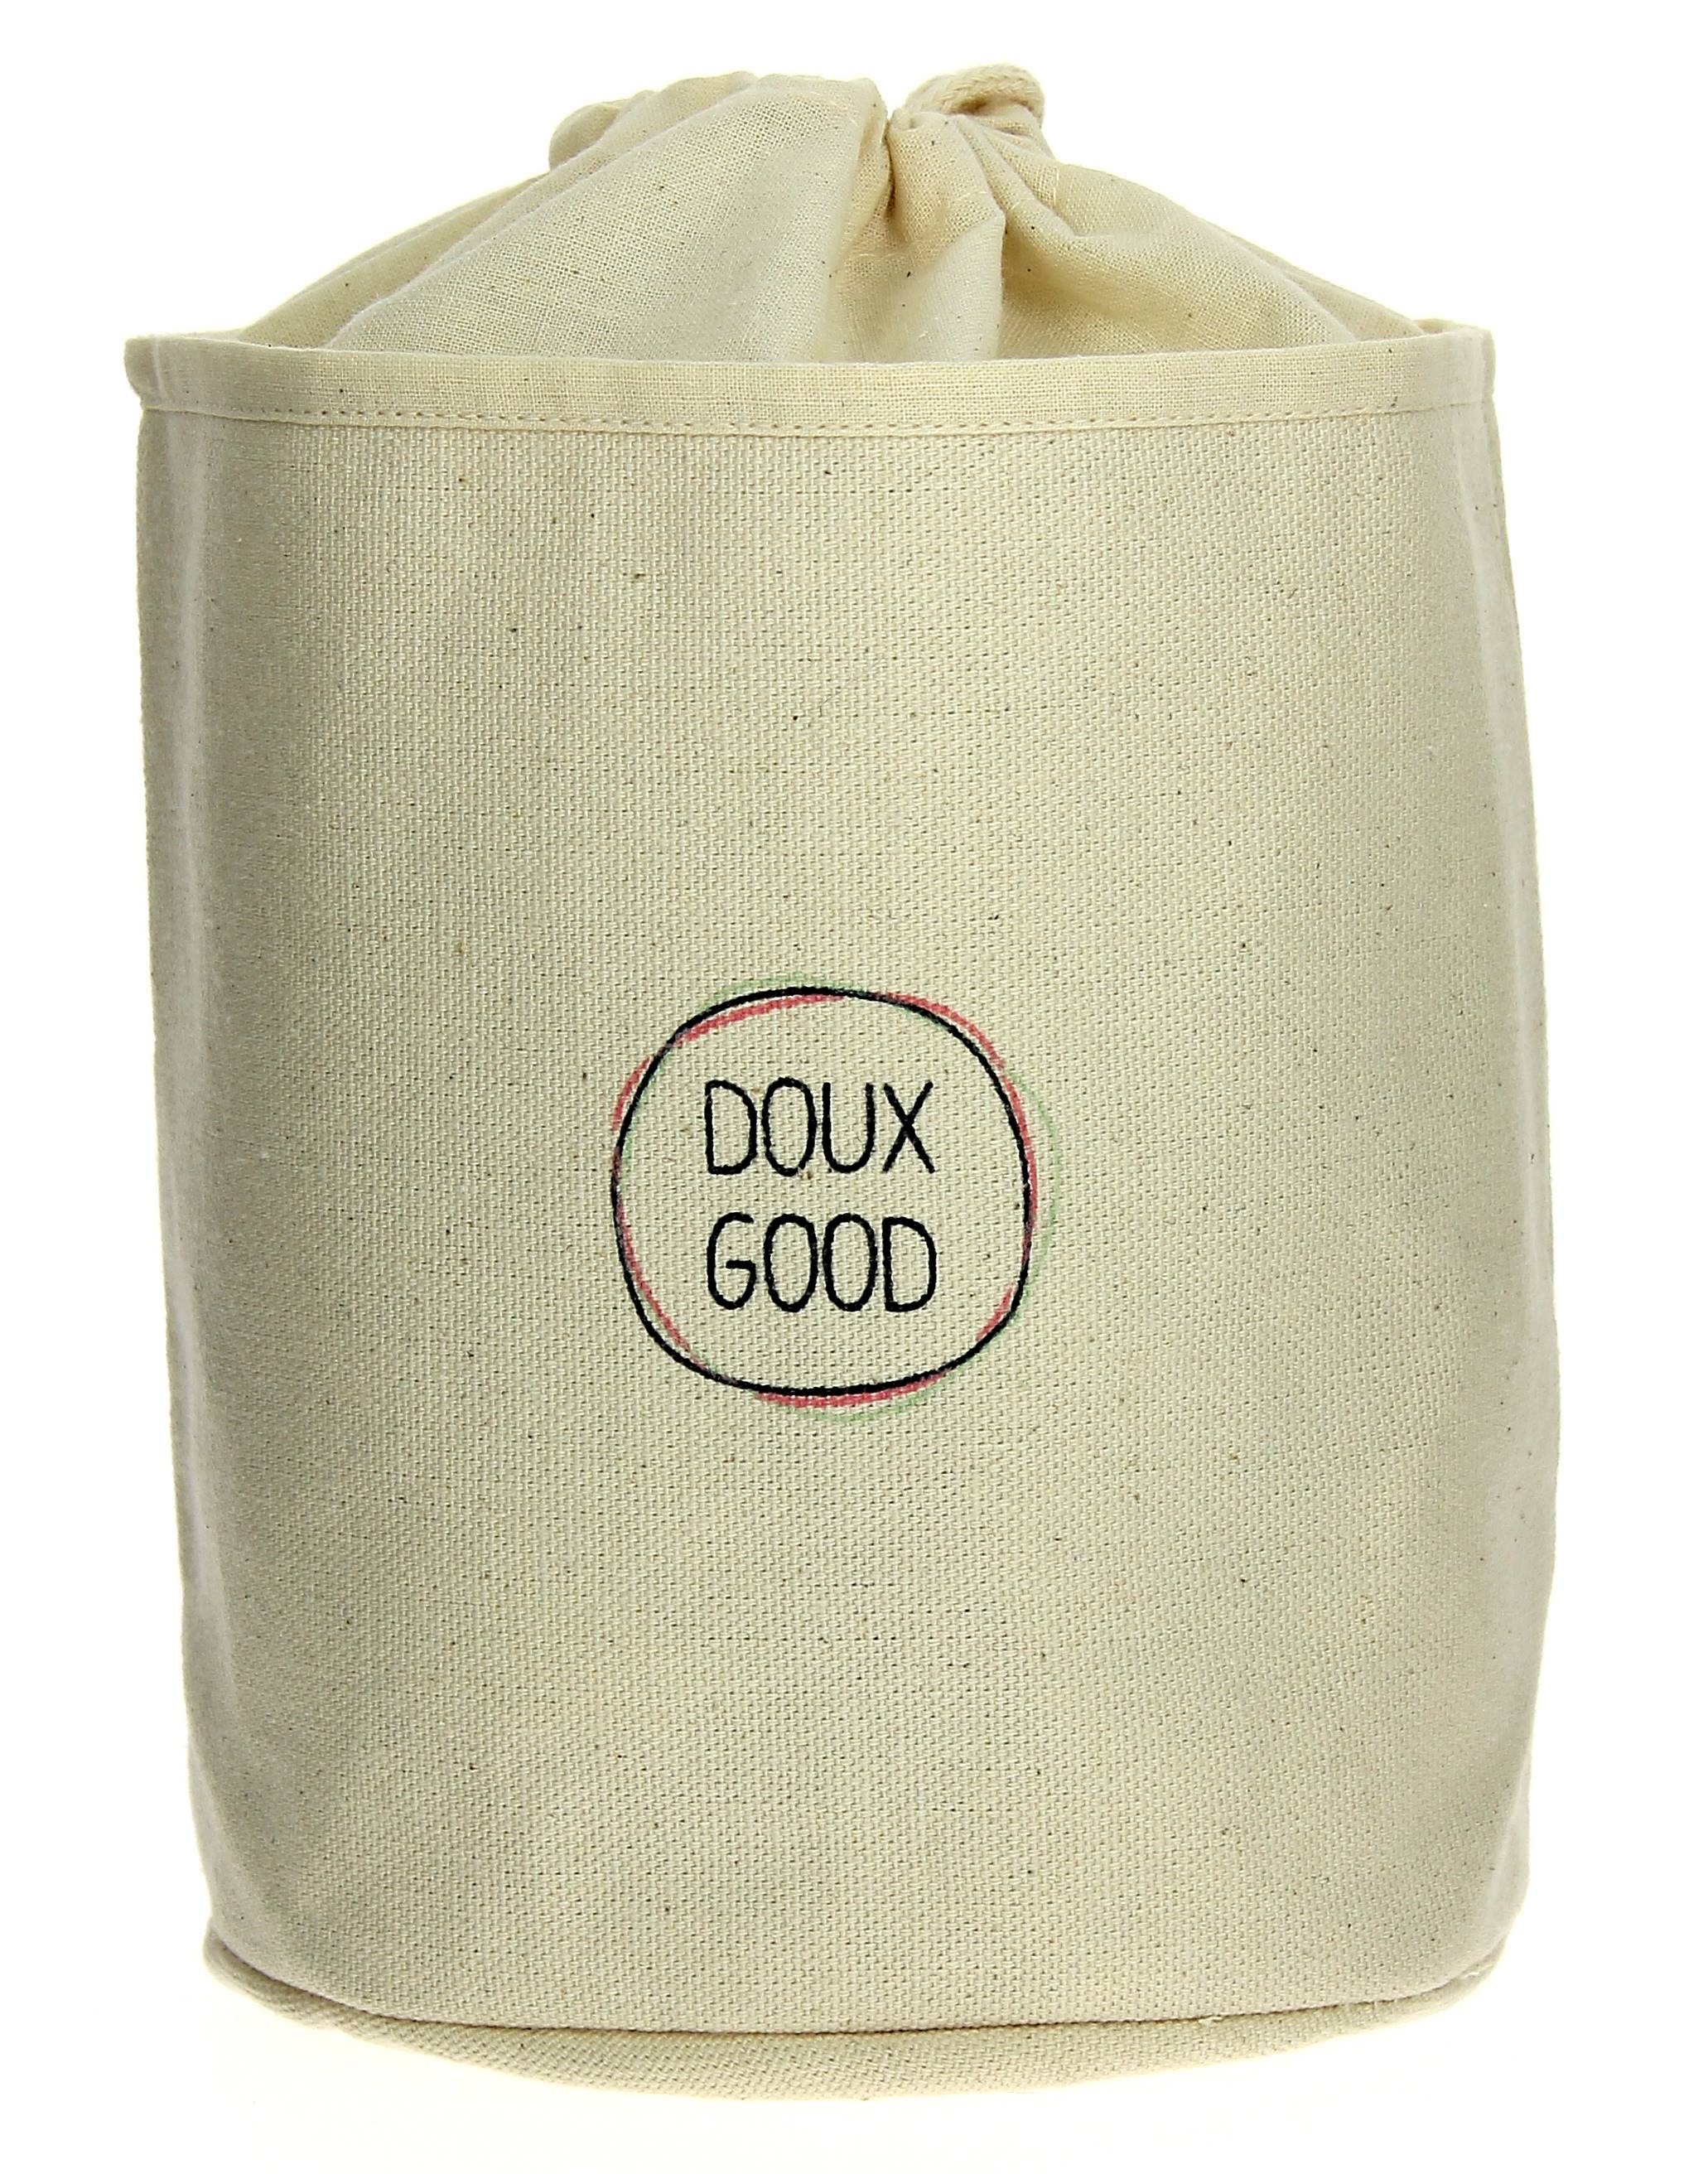 Doux Good - Trousse de toilette